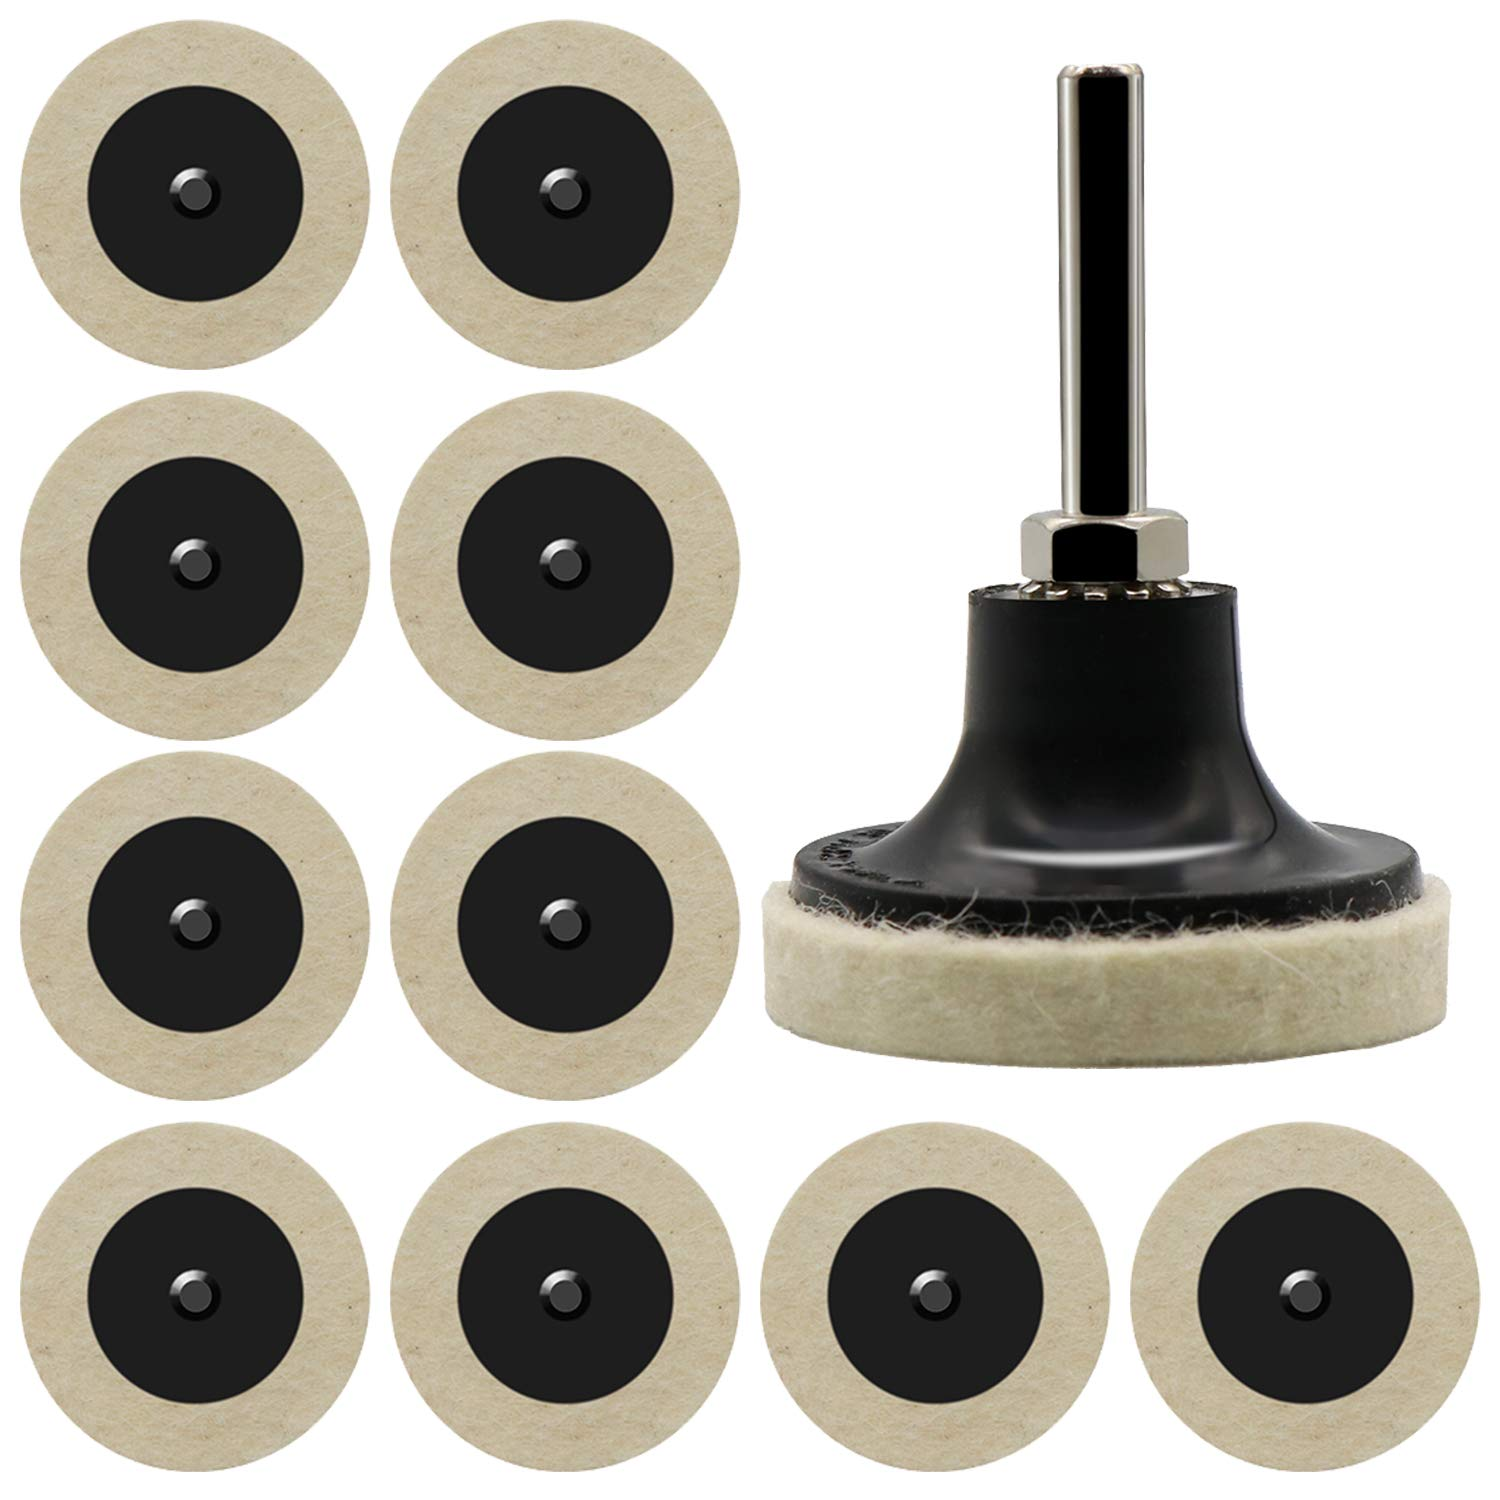 """10pcs Compressed Wool Fabric QC Disc Pads Plus 2 Inch Roloc Disc Pad Holder with 1/4"""" Shank for Polishing, Buffing, Sanding, Surface Preparation-White"""